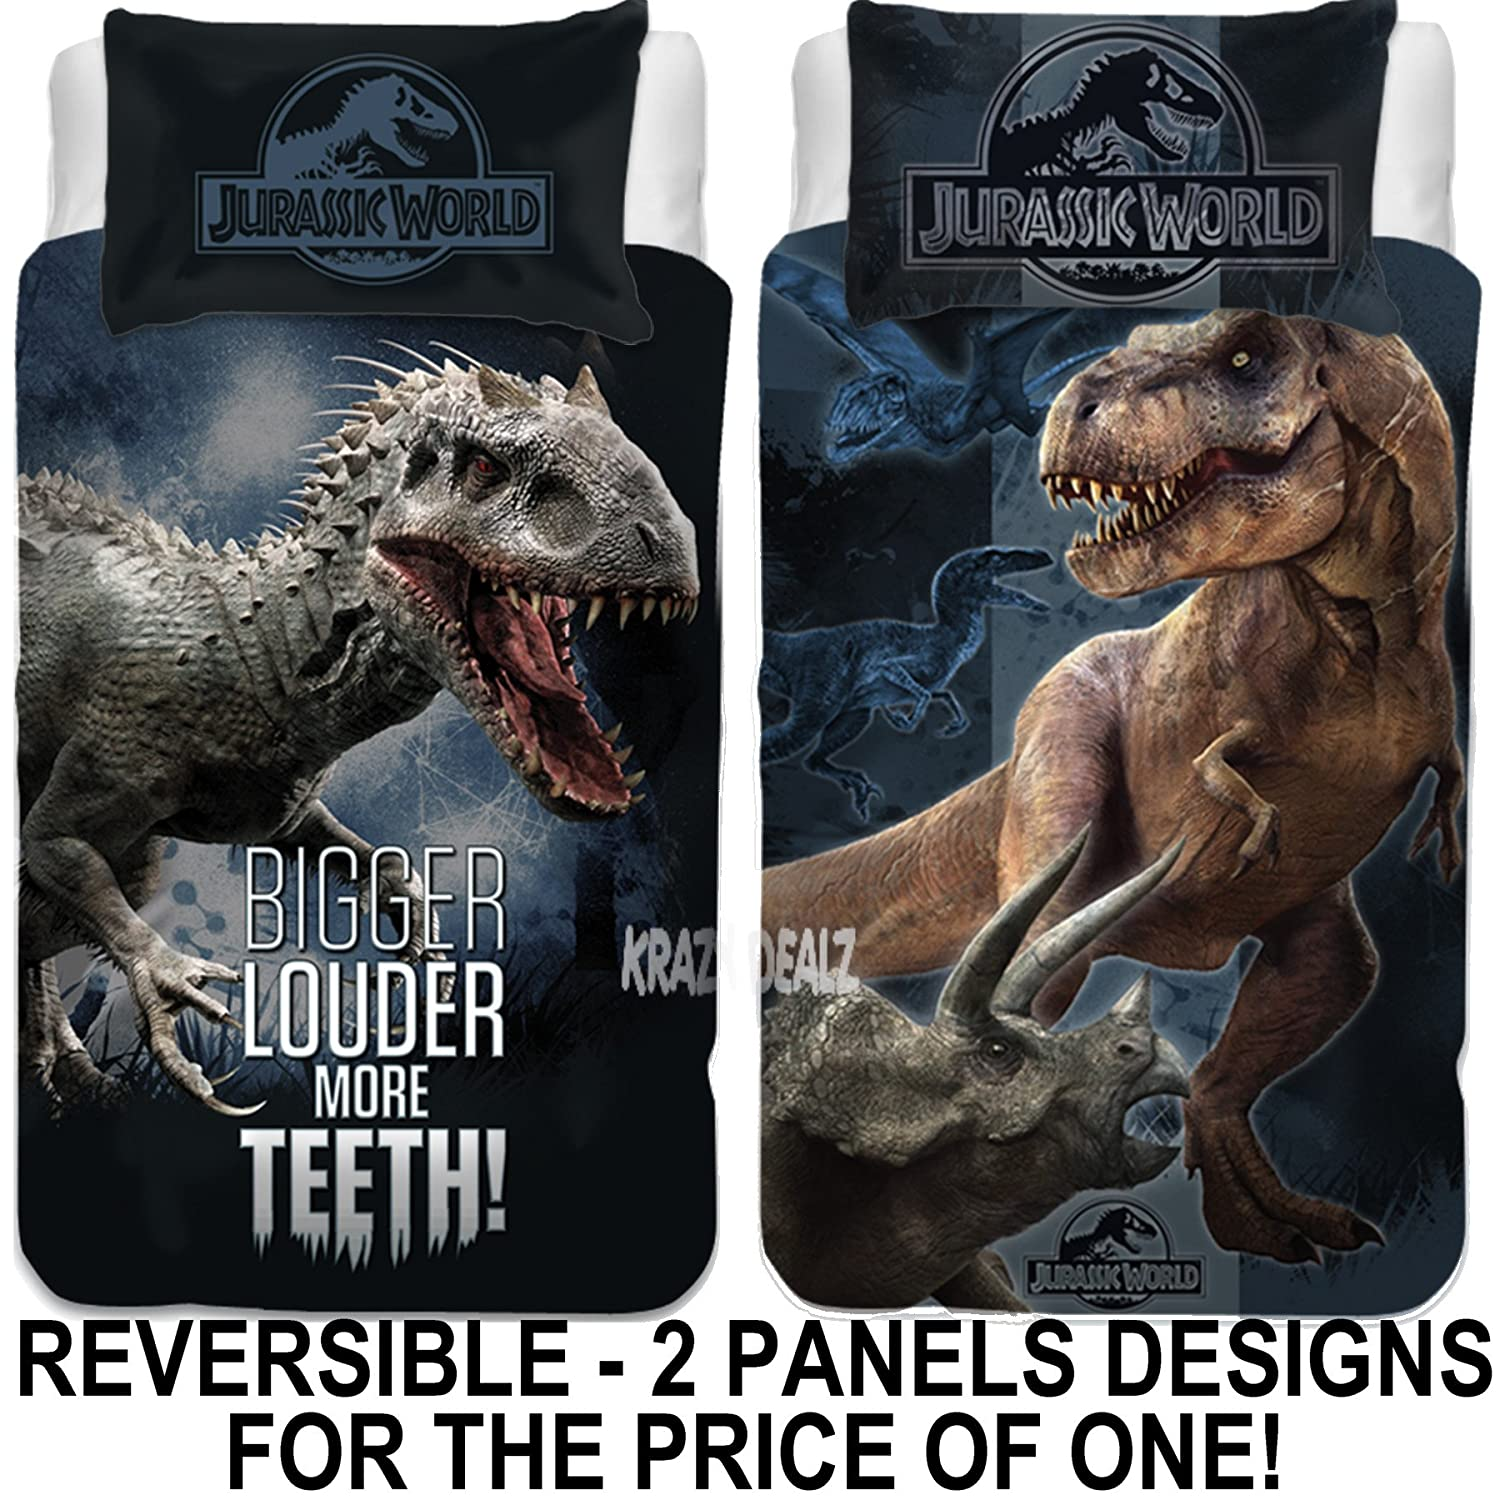 Jurassic World Single Panel Duvet Cover Bed Set   Reversible Panel